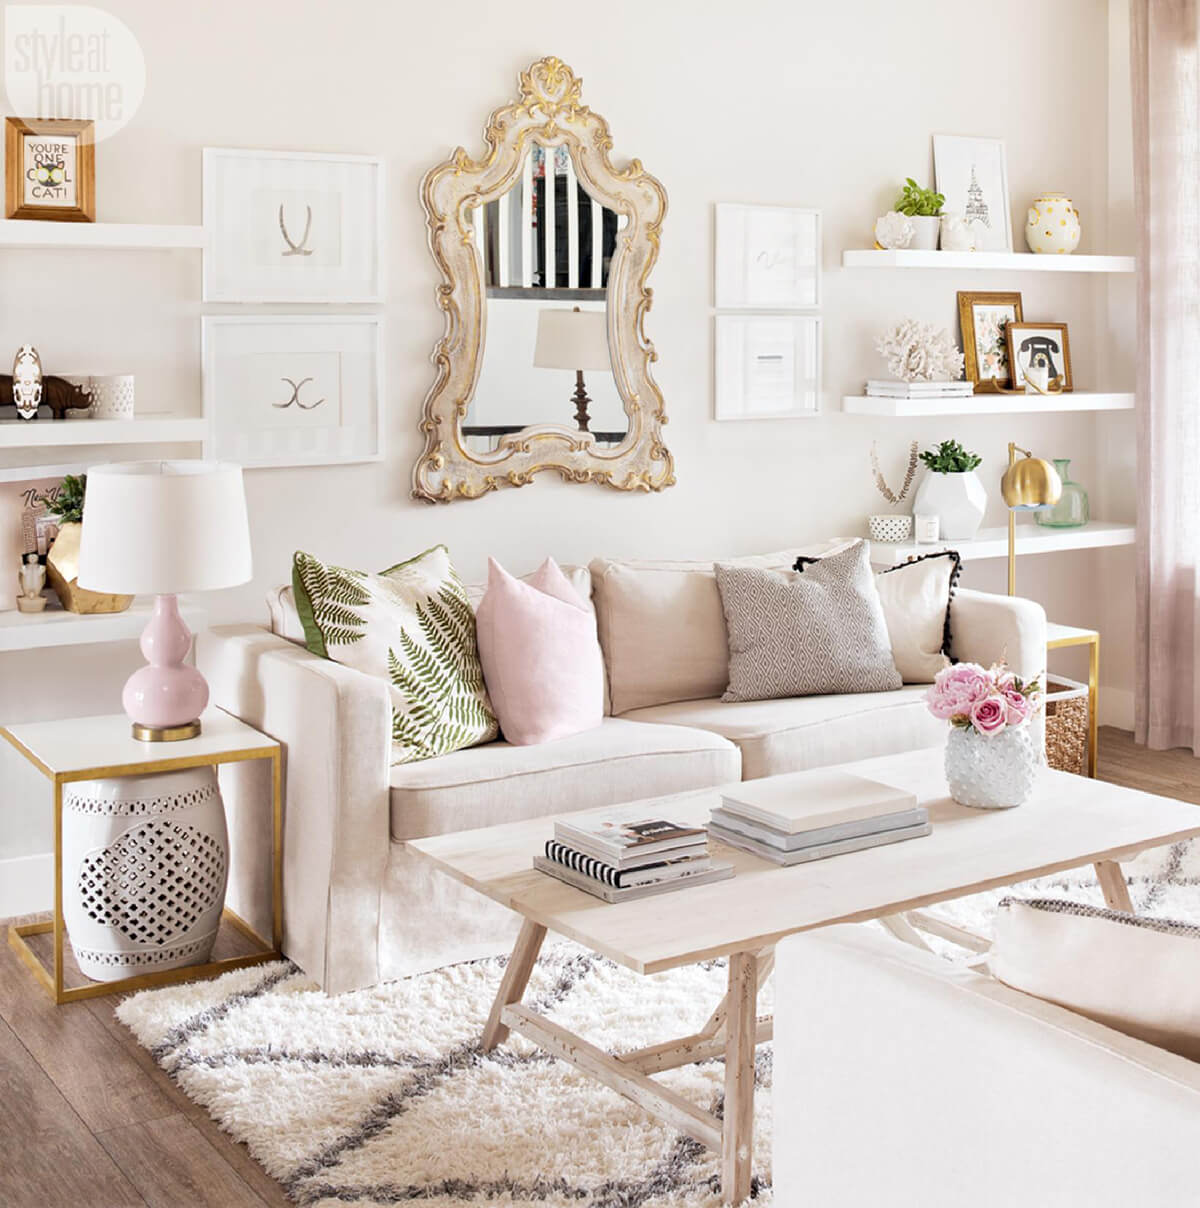 white leather office chair uk gripper pads 16 rose gold and copper details for stylish interior decor - style motivation